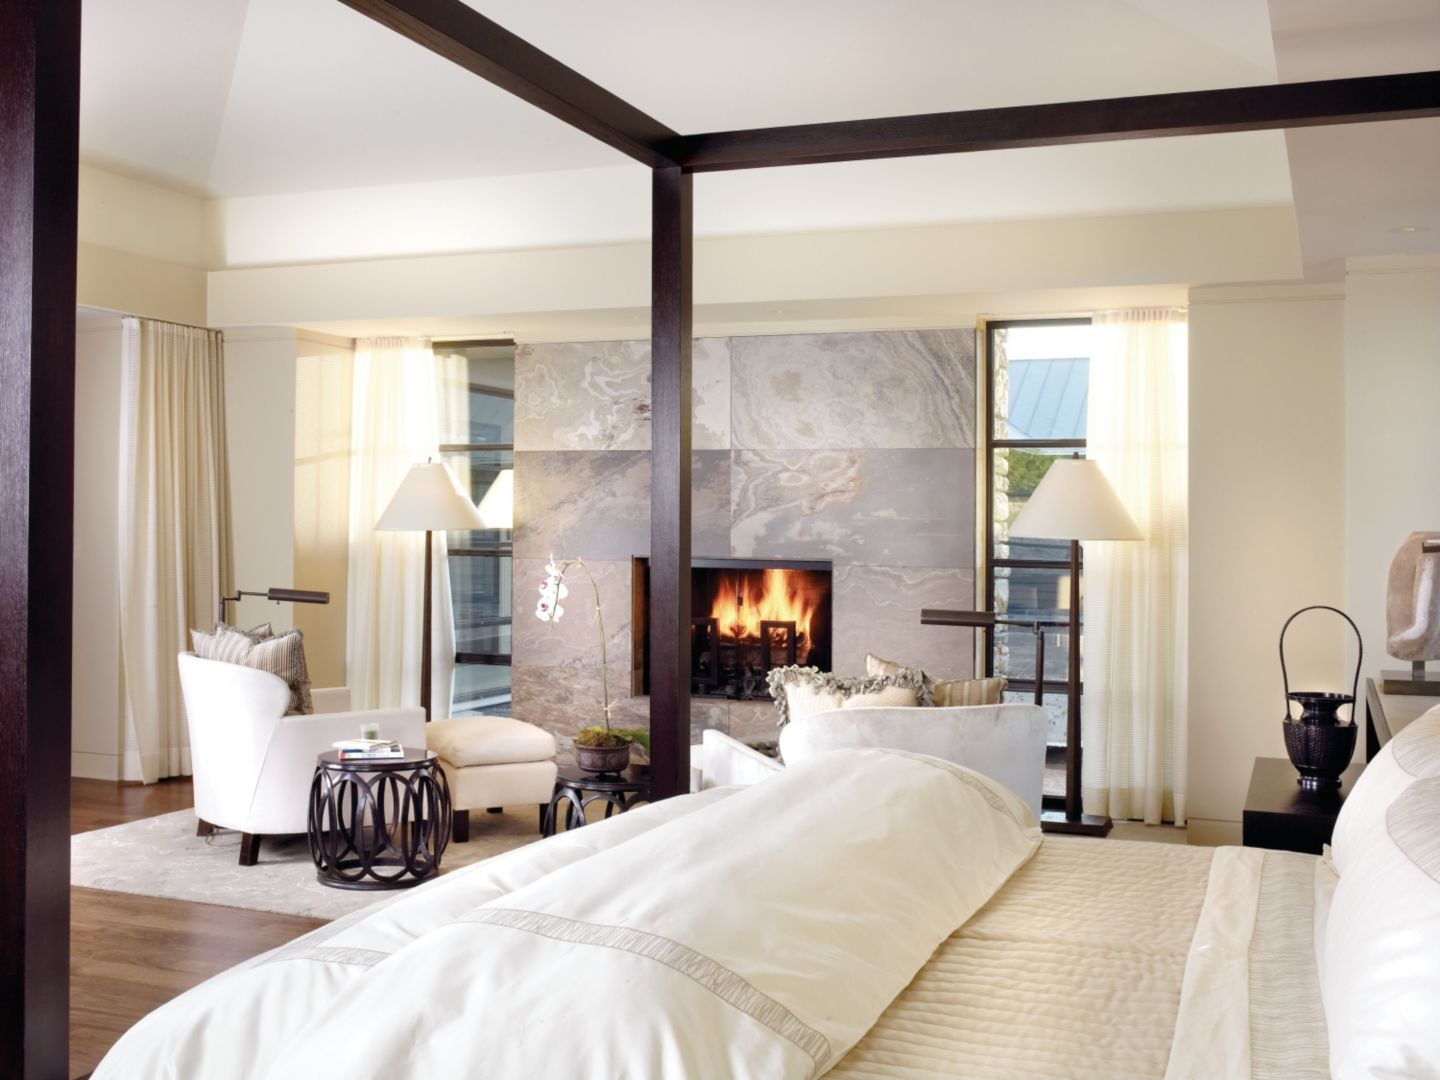 12 Cozy  Warm Bedroom Fireplaces  Luxedaily  Design Insight Amazing Bedroom Fireplace Design Ideas Review